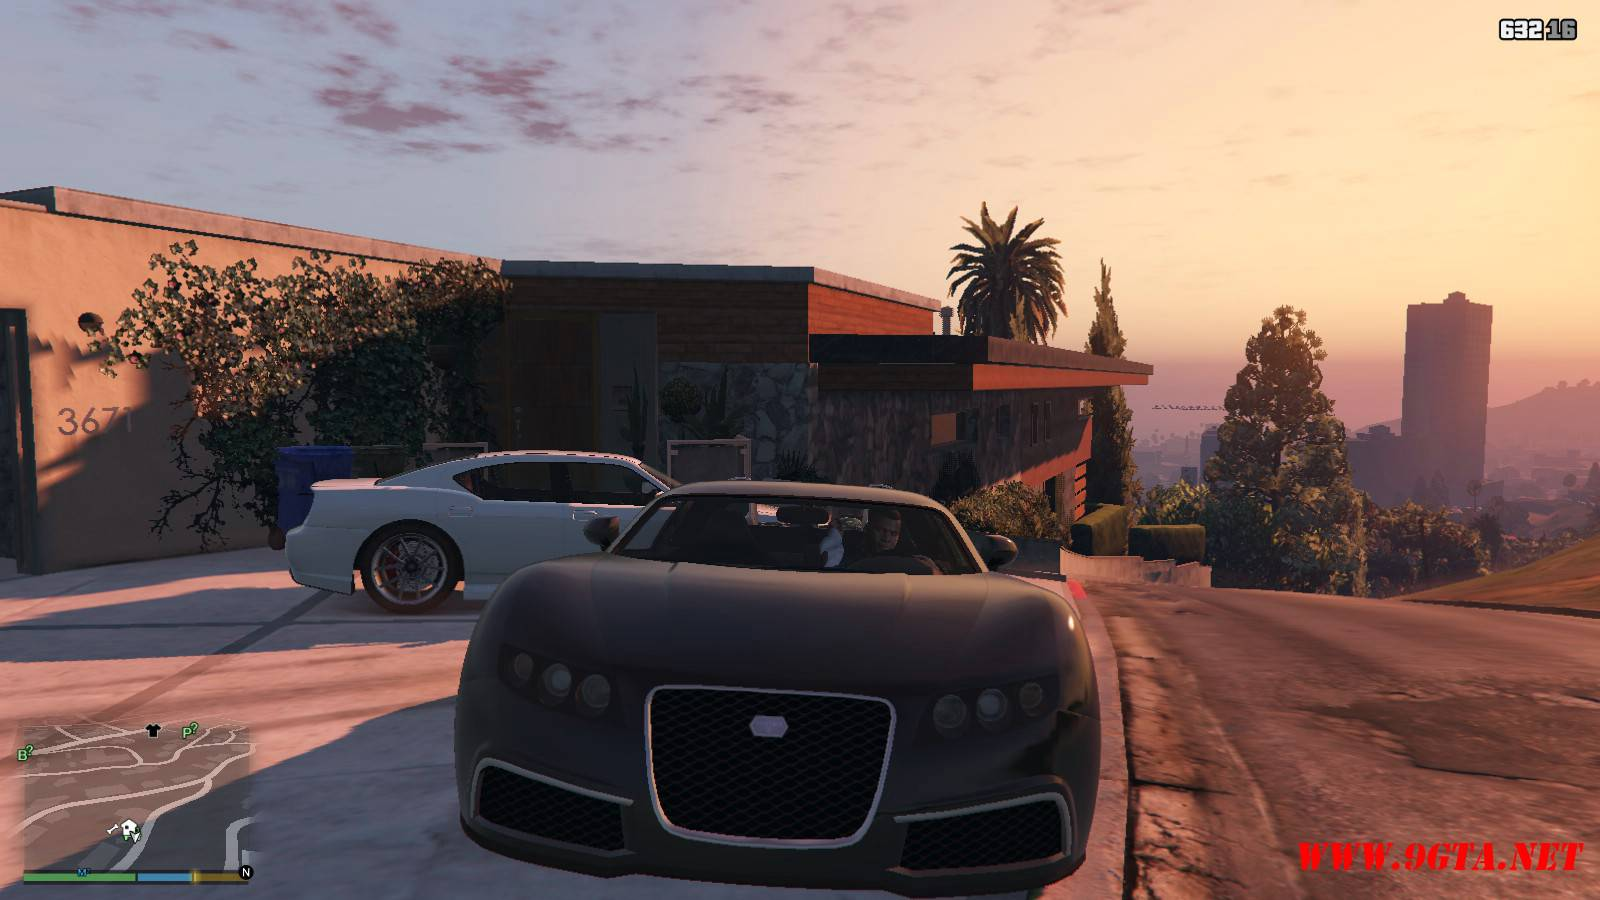 Truffade Adders Sport GTA5 Mods (9)